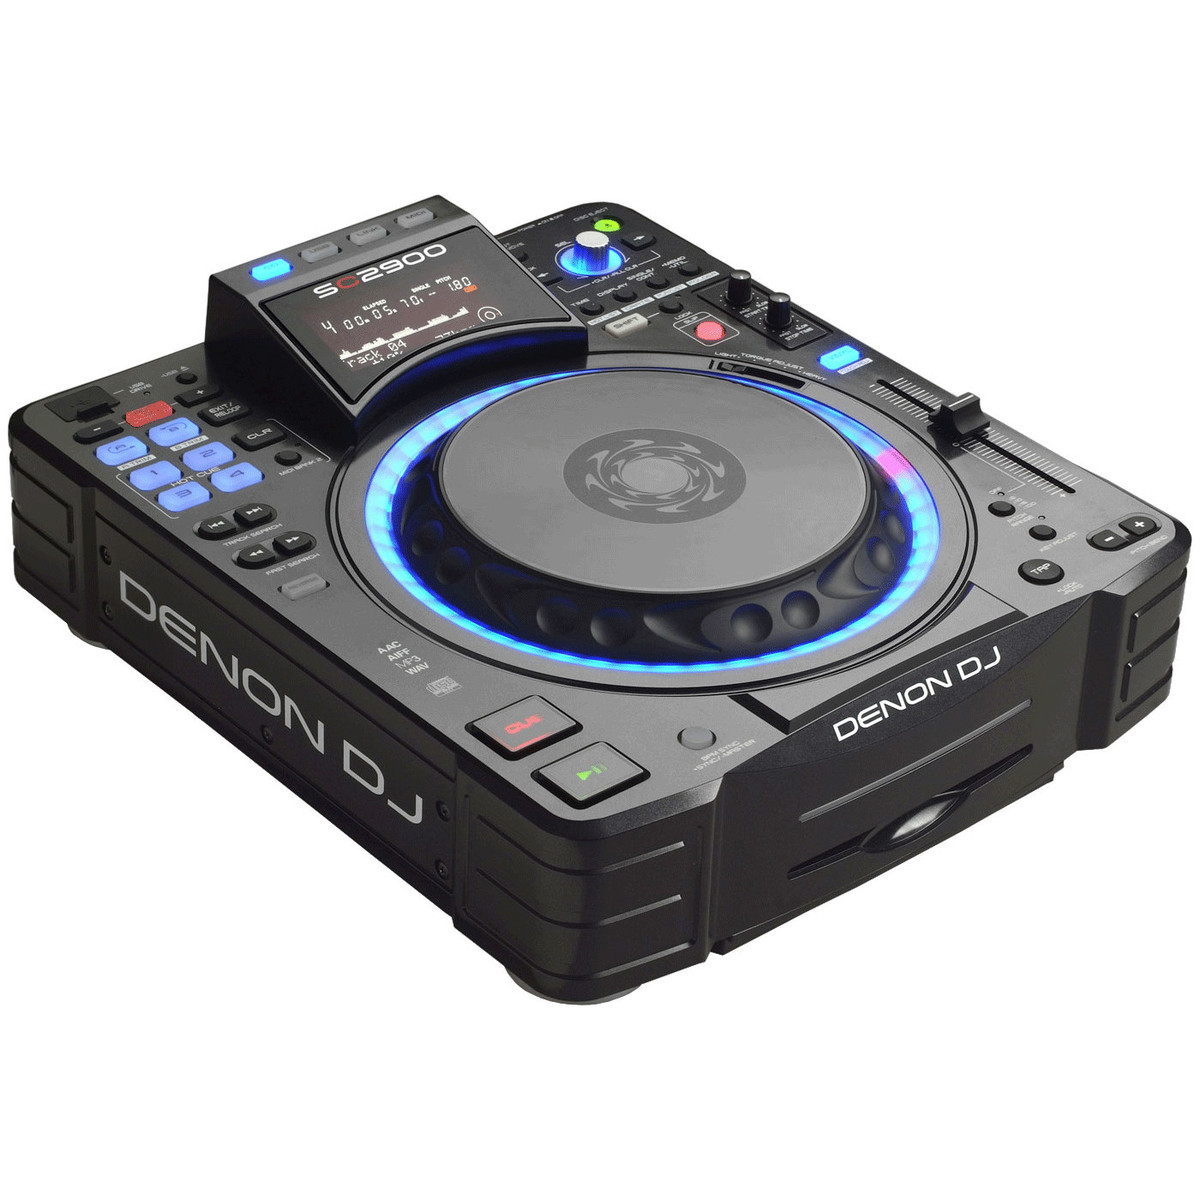 denon dj sc2900 controller with mp3 and cd playback b stock at gear4music. Black Bedroom Furniture Sets. Home Design Ideas